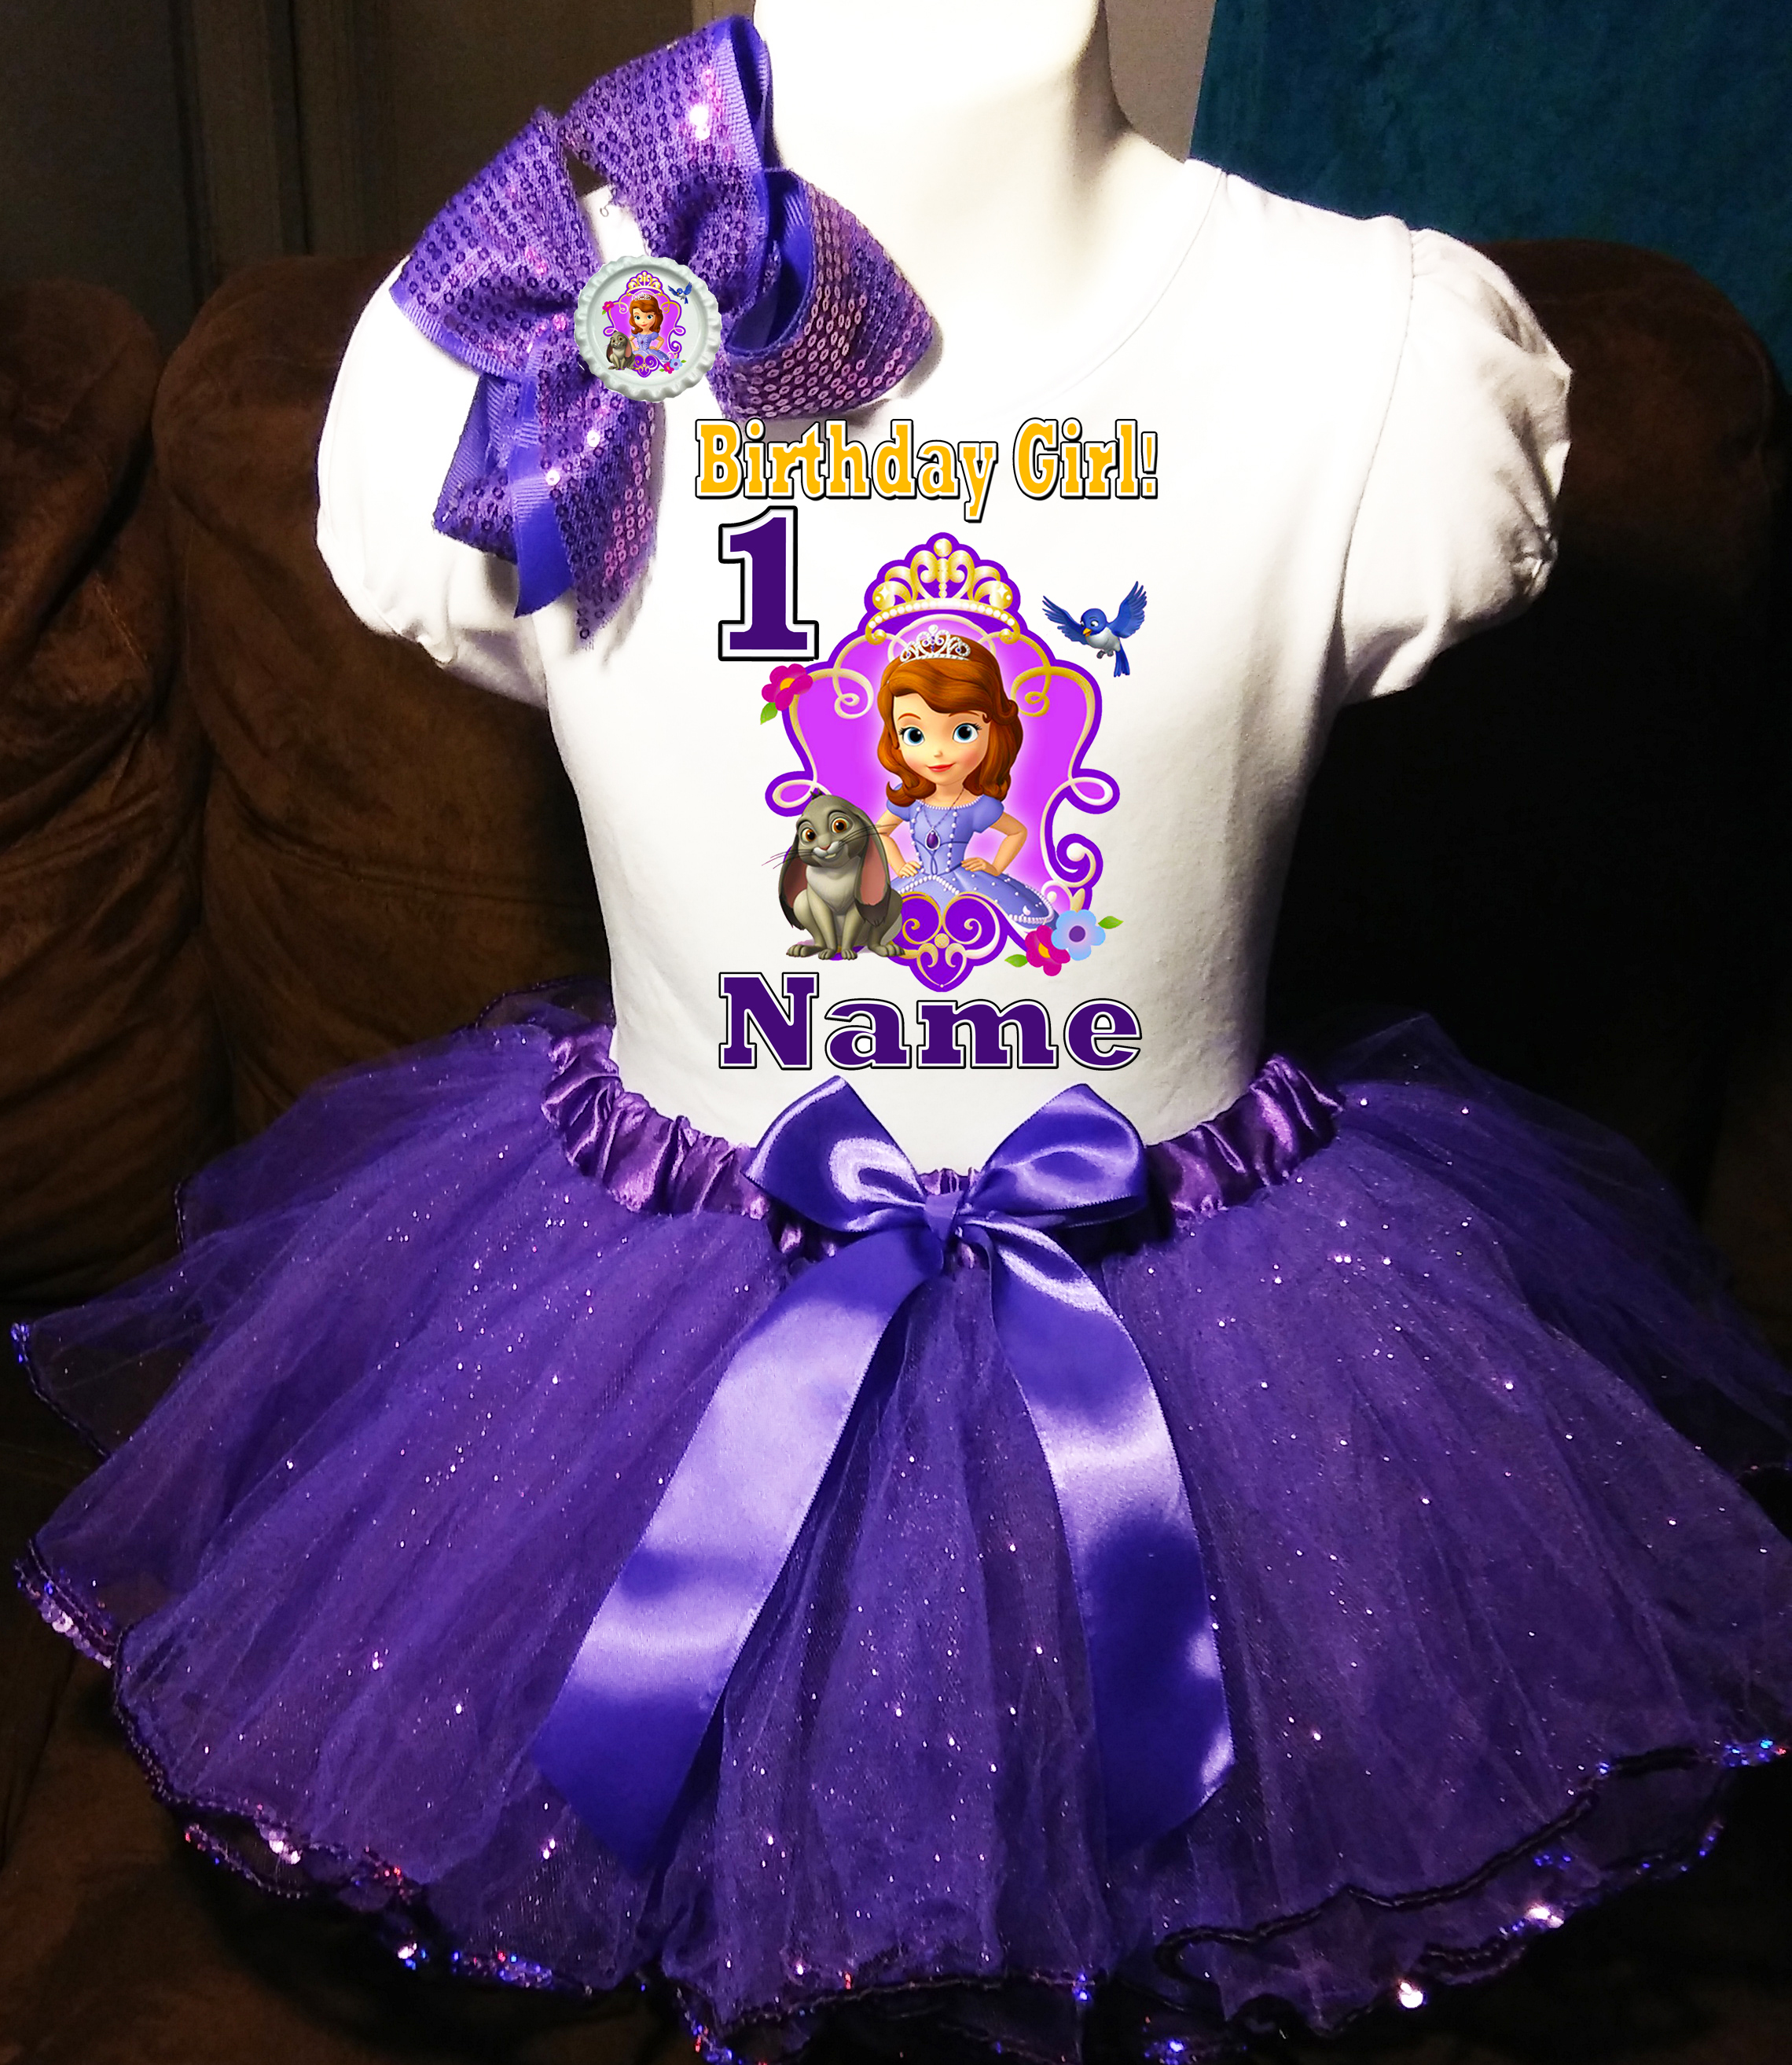 60fc871a Personalized Outfit For 1st Birthday | Kuenzi Turf & Nursery